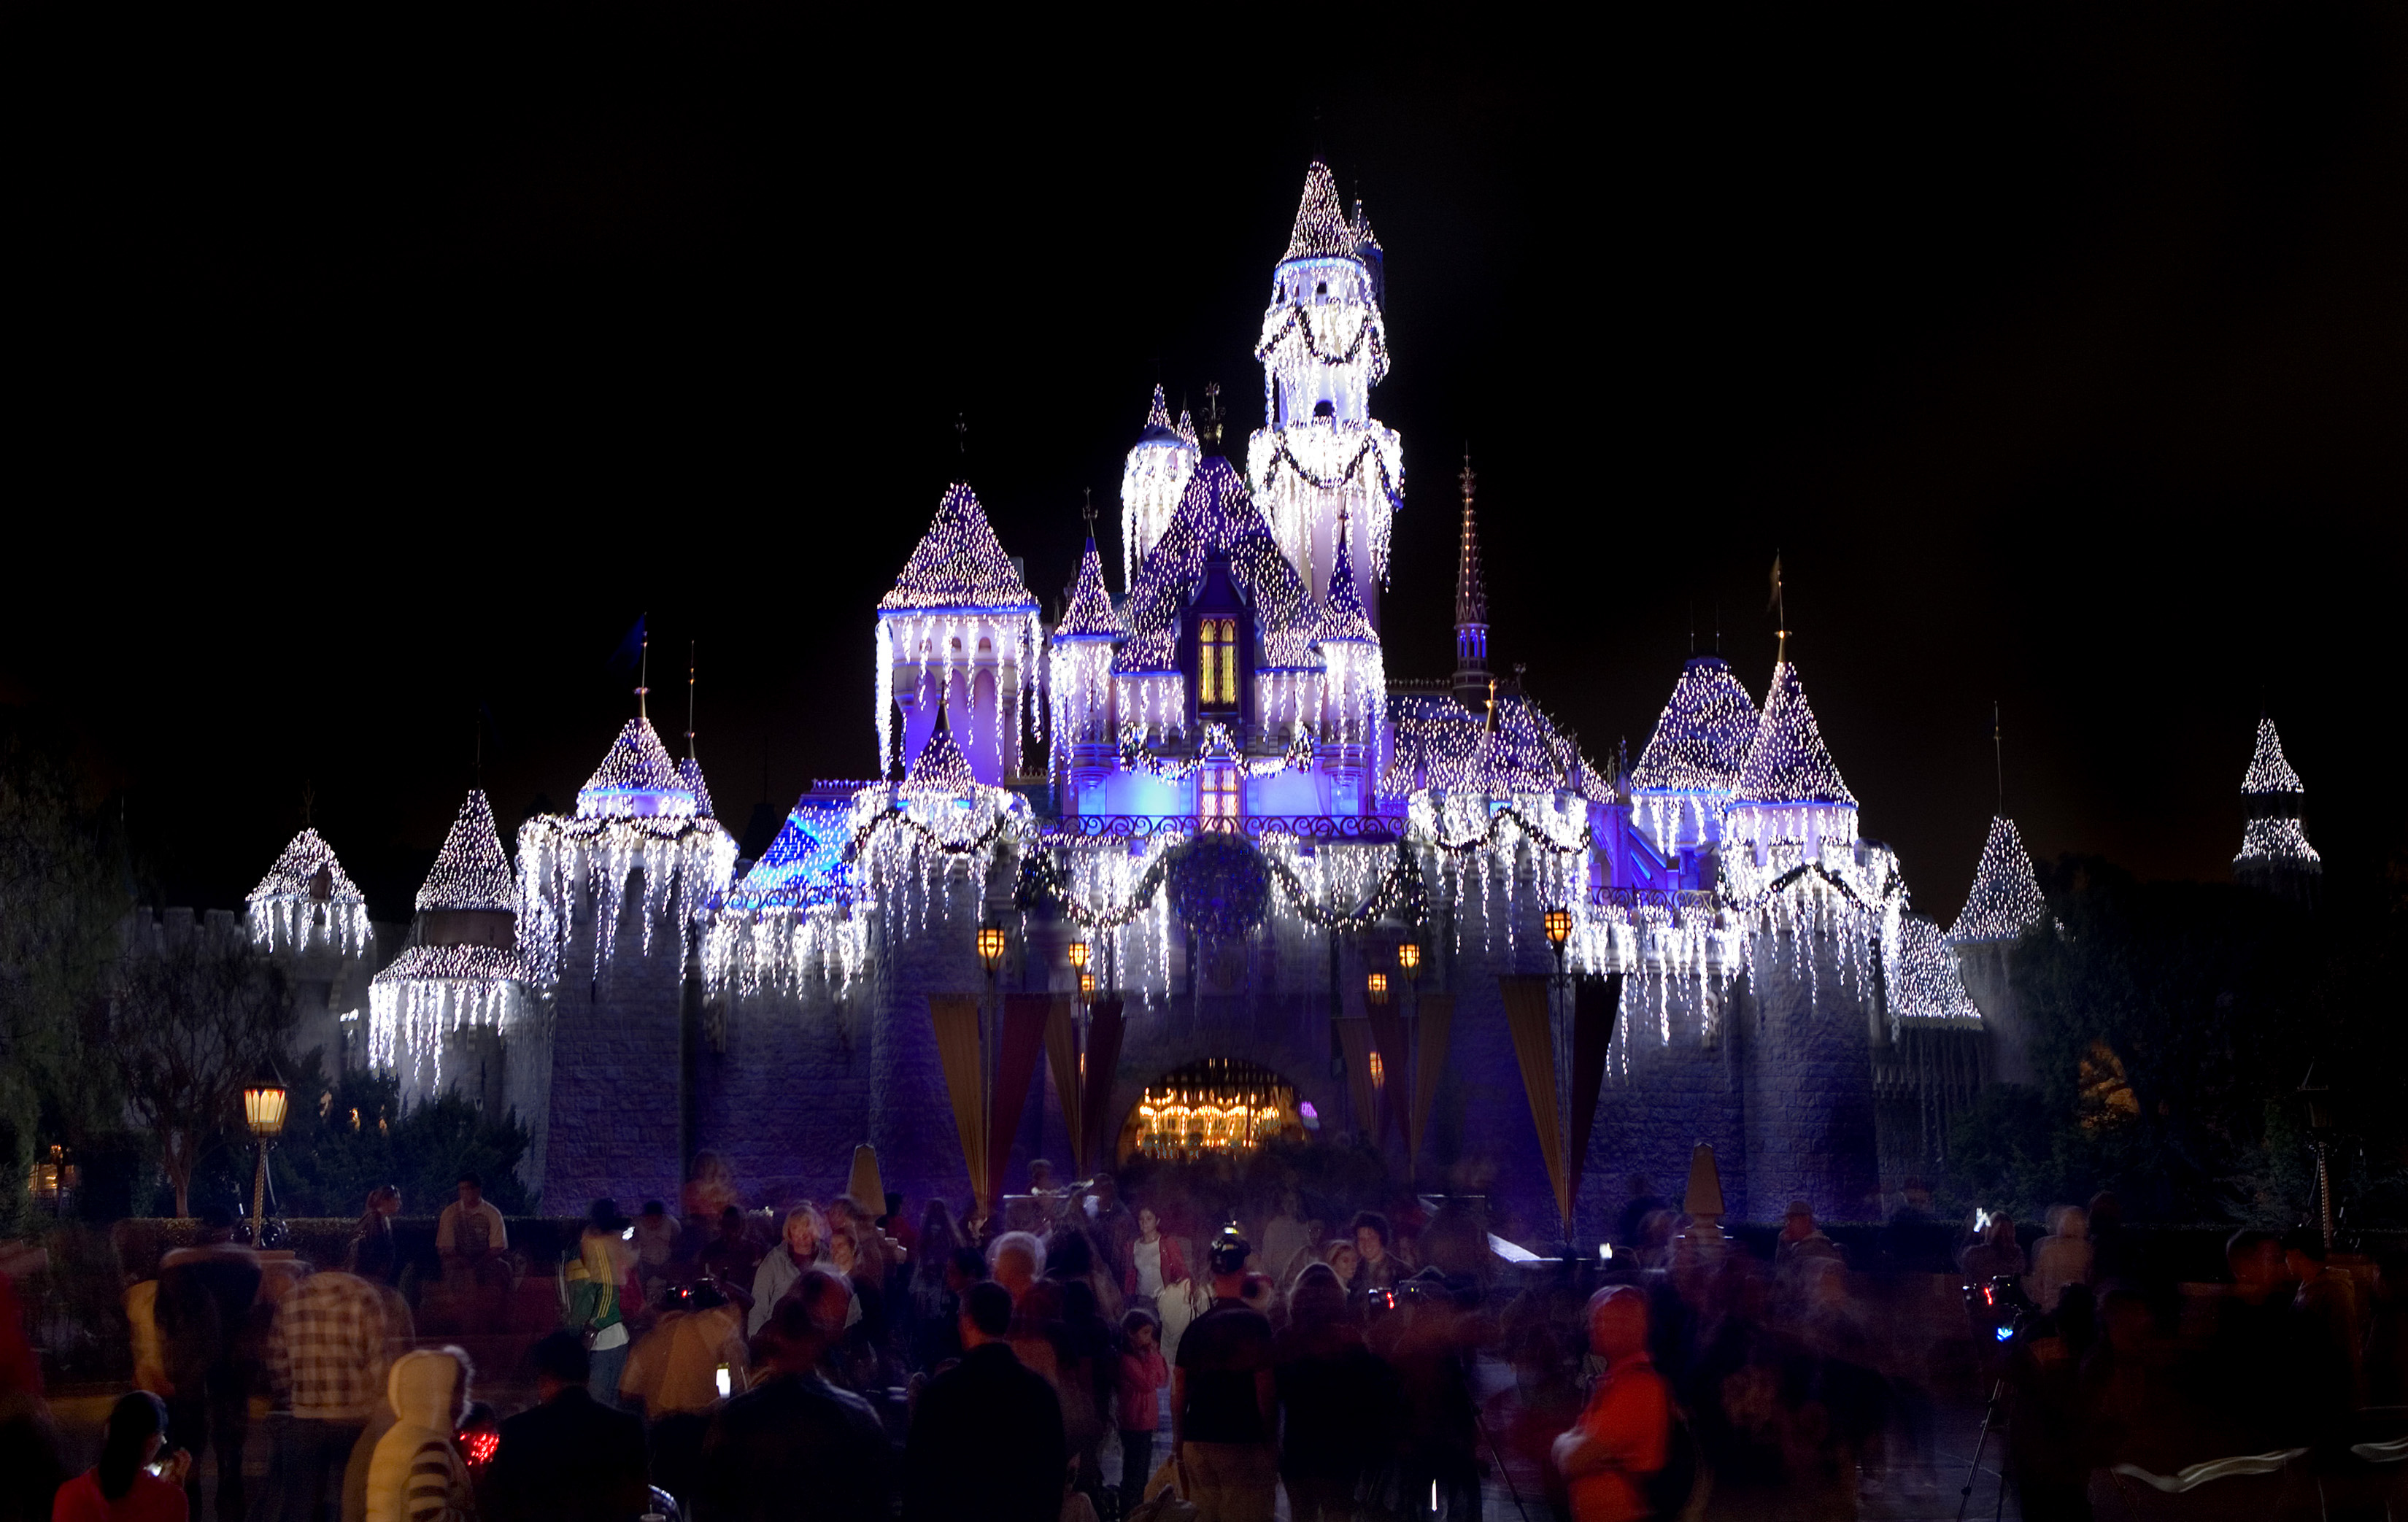 "HOLIDAYS AT THE DISNEYLAND RESORT (ANAHEIM, Calif.) – The Disneyland Resort is a magical place for creating holiday memories with family and friends. Holidays at the Disneyland Resort returns Nov. 9, 2018 through Jan.6, 2019, featuring seasonal offerings that include Sleeping Beauty's Winter Castle, Festival of Holidays, and ""Believe … in Holiday Magic"" fireworks spectacular, plus guest favorites including ""it's a small world"" Holiday and Haunted Mansion Holiday. (Paul Hiffmeyer/Disneyland Resort)"